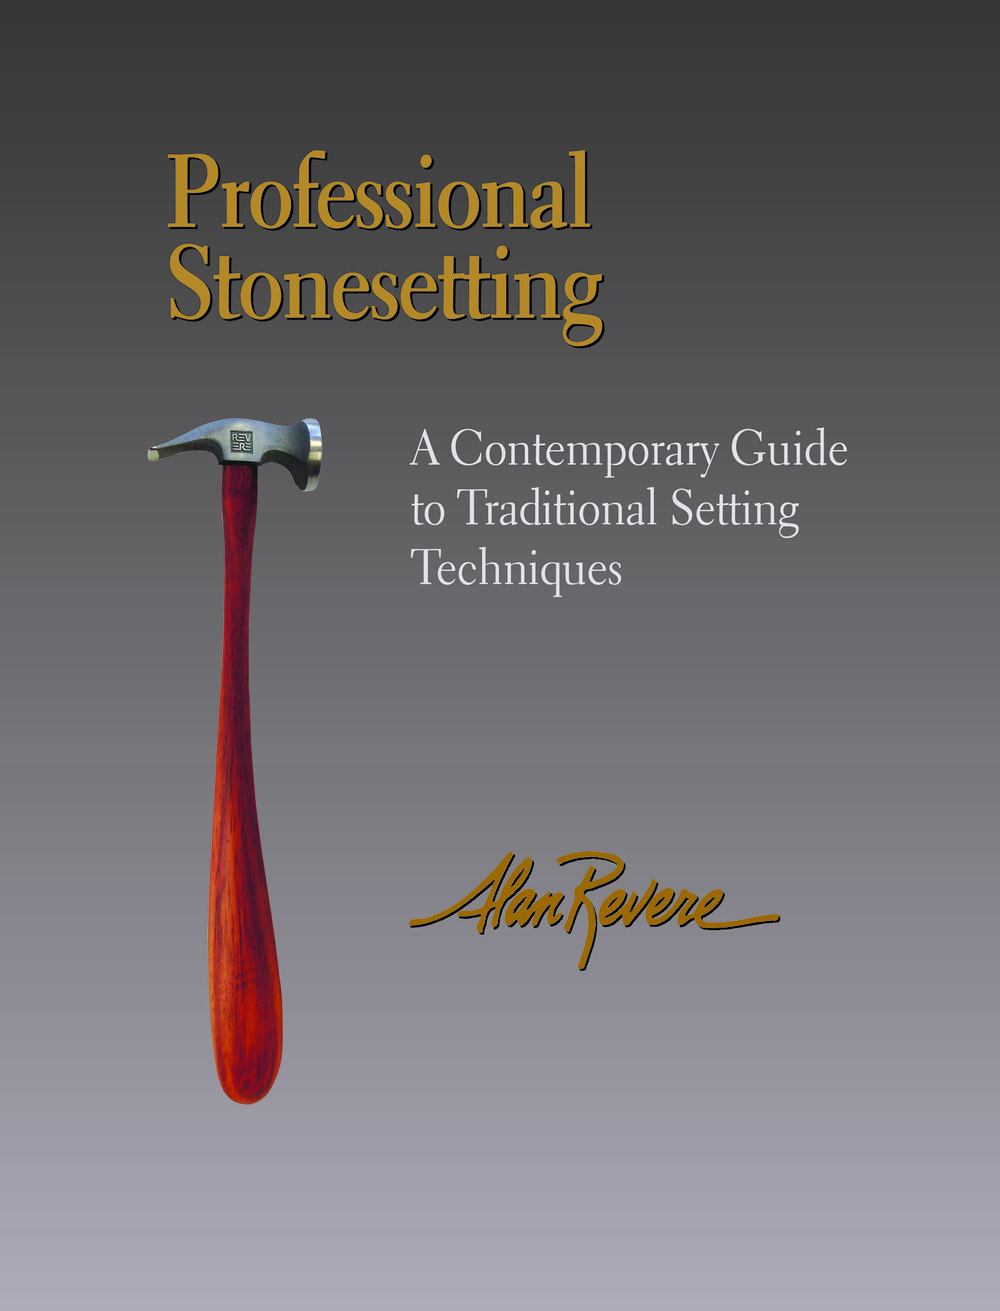 Most Recent Release by Alan Revere!  -  Professional Stonesetting by Alan RevereDownload a review by Helen Driggs for Lapidary Journal